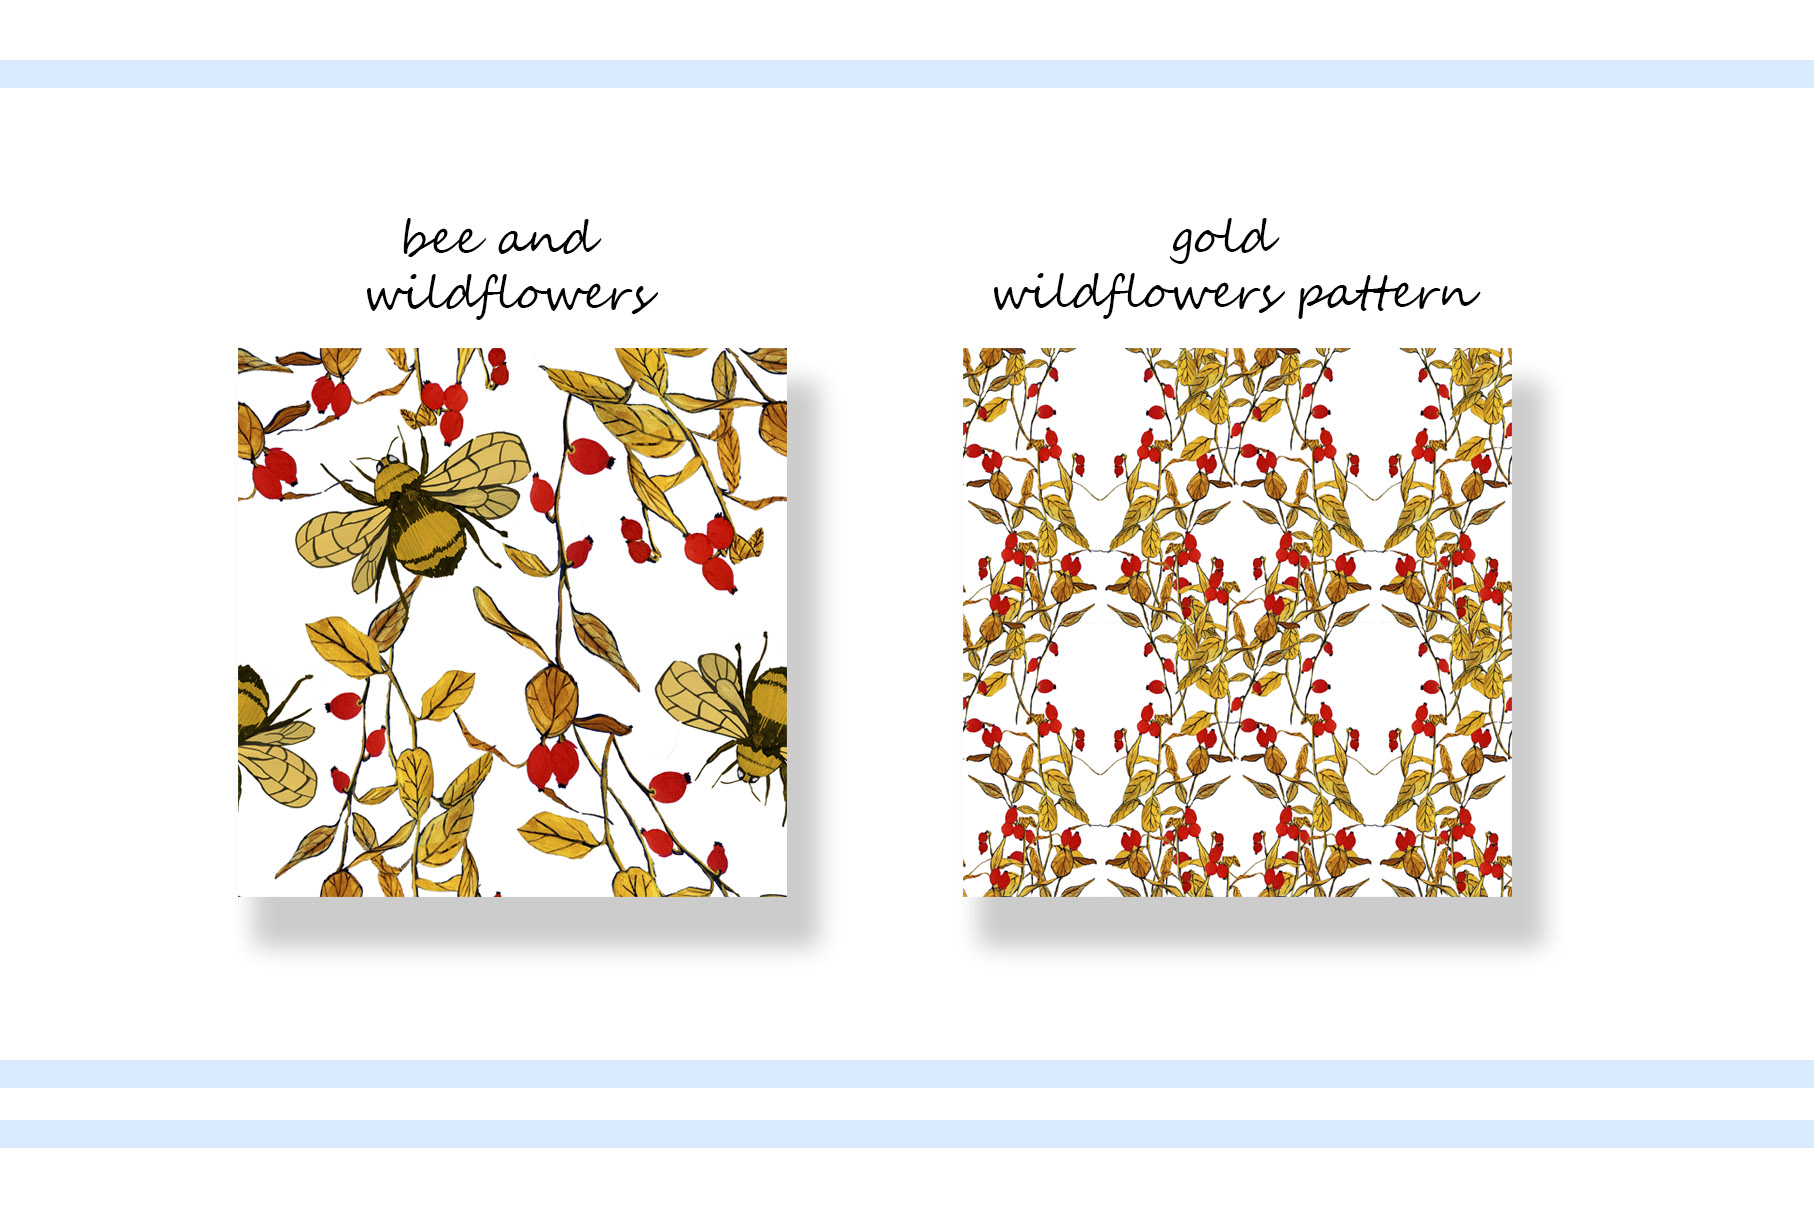 Colorful watercolor illustration. Patterns and elements example image 7